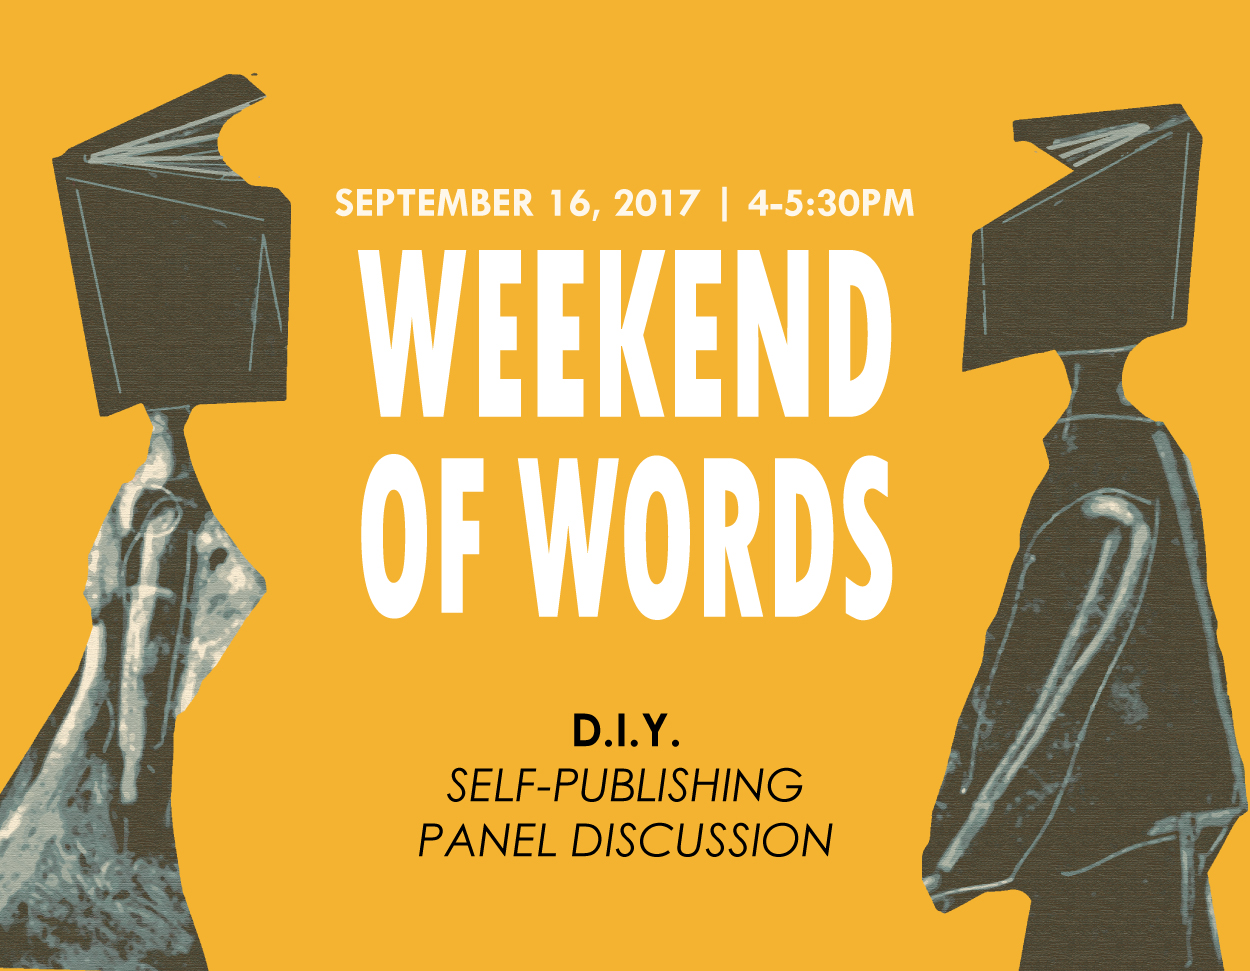 D.I.Y. Self-Publishing Panel Discussion